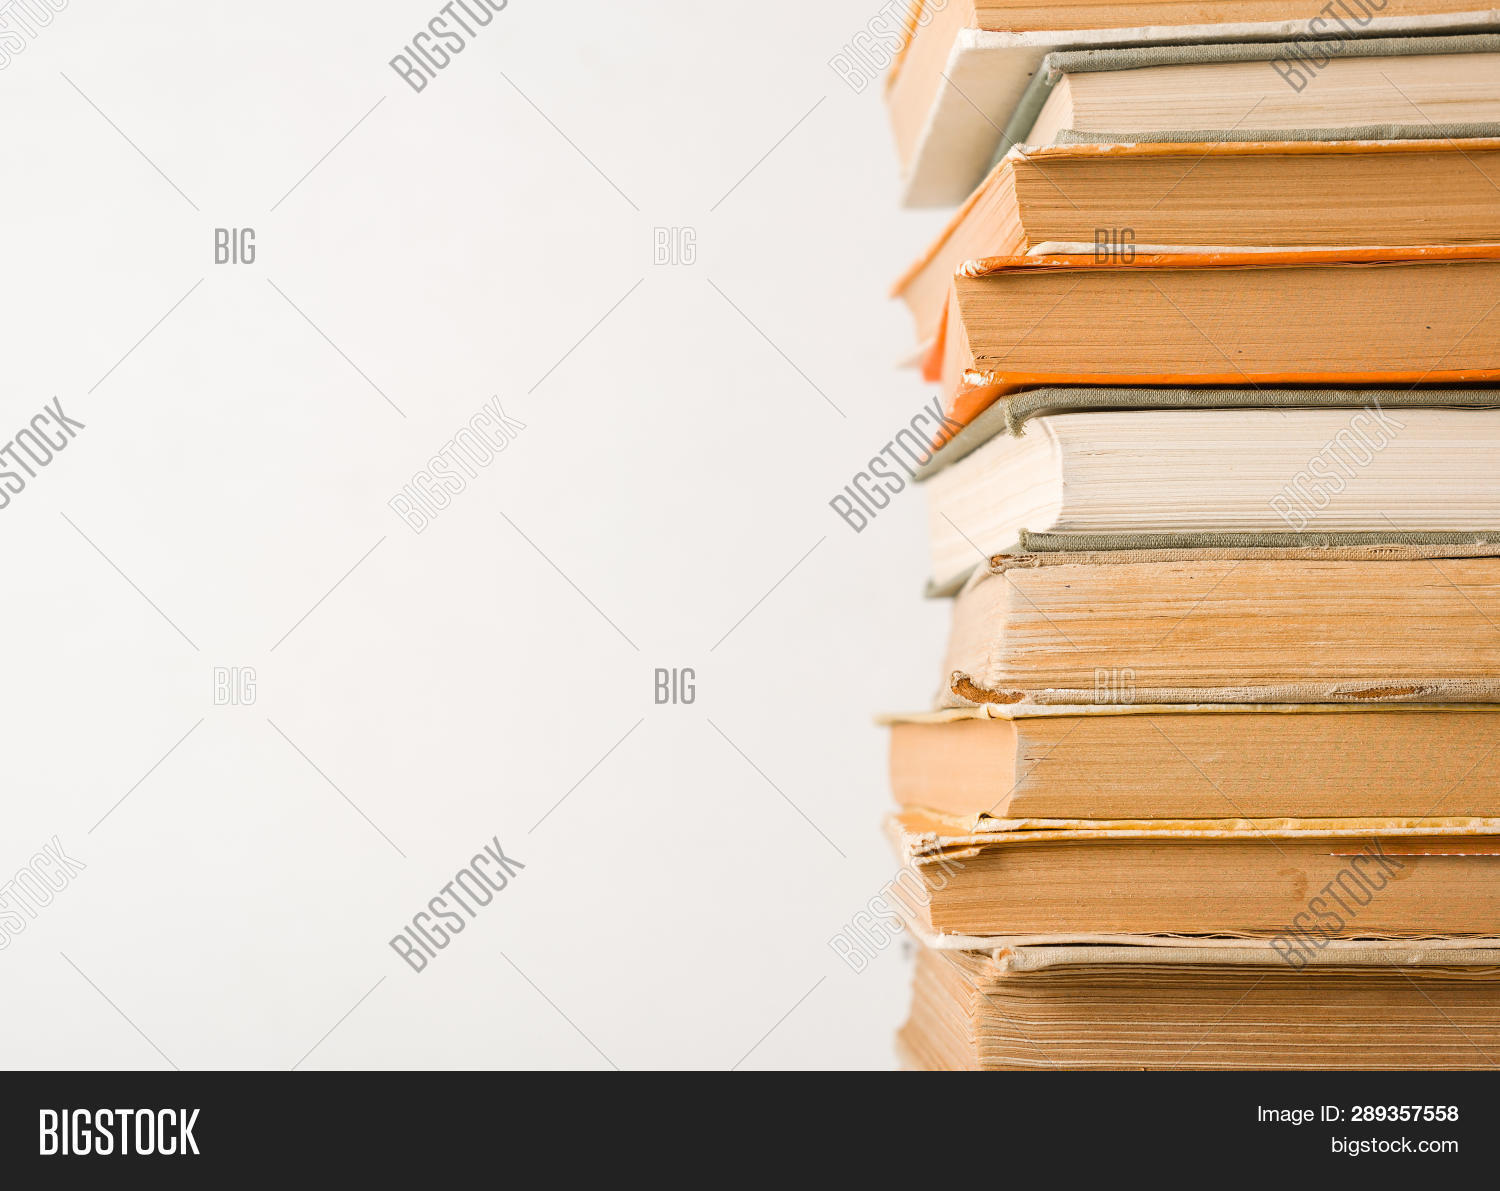 ancient,antique,background,book,brown,classics,collection,cover,culture,damaged,dirty,document,education,expertise,heap,information,isolated,knowledge,law,learning,library,literary,literature,many,object,old,old-fashioned,open,page,paper,pile,piled,reading,retro,row,school,shelf,stack,stacked,study,text,textbook,texture,tower,university,vintage,white,wisdom,yellow